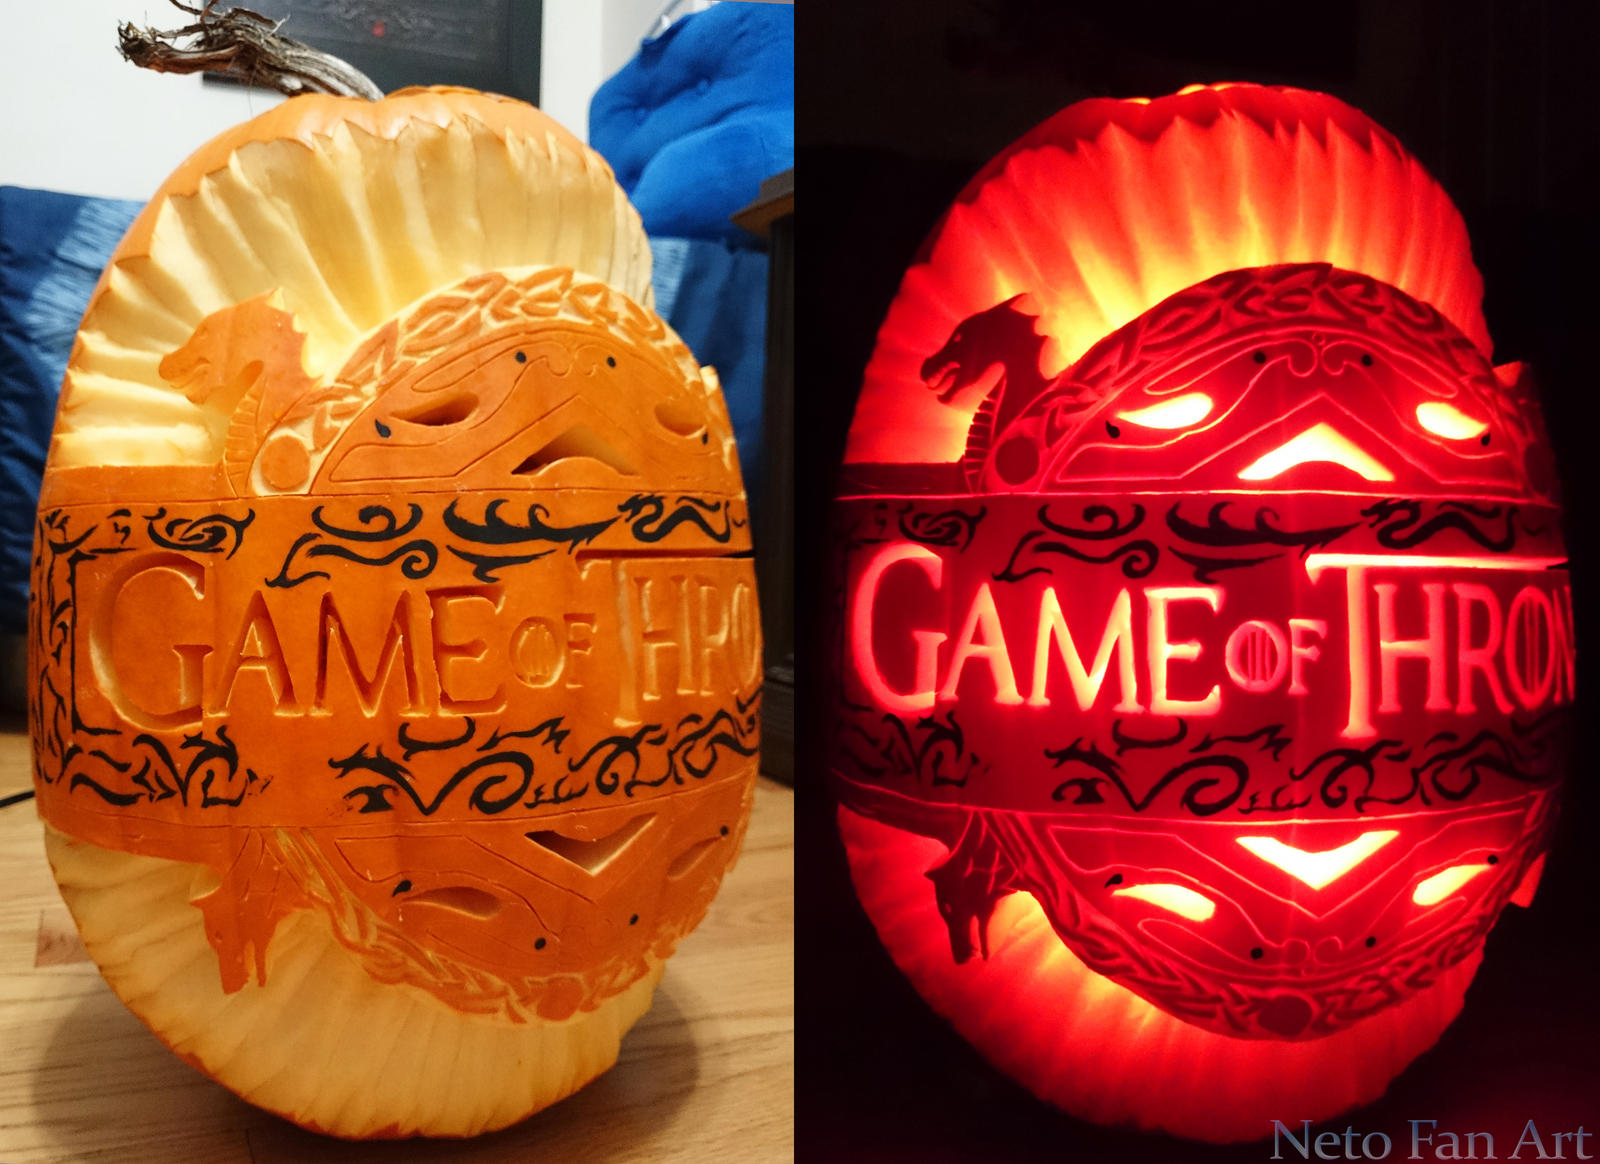 Game of thrones pumpkin by netofanart on deviantart